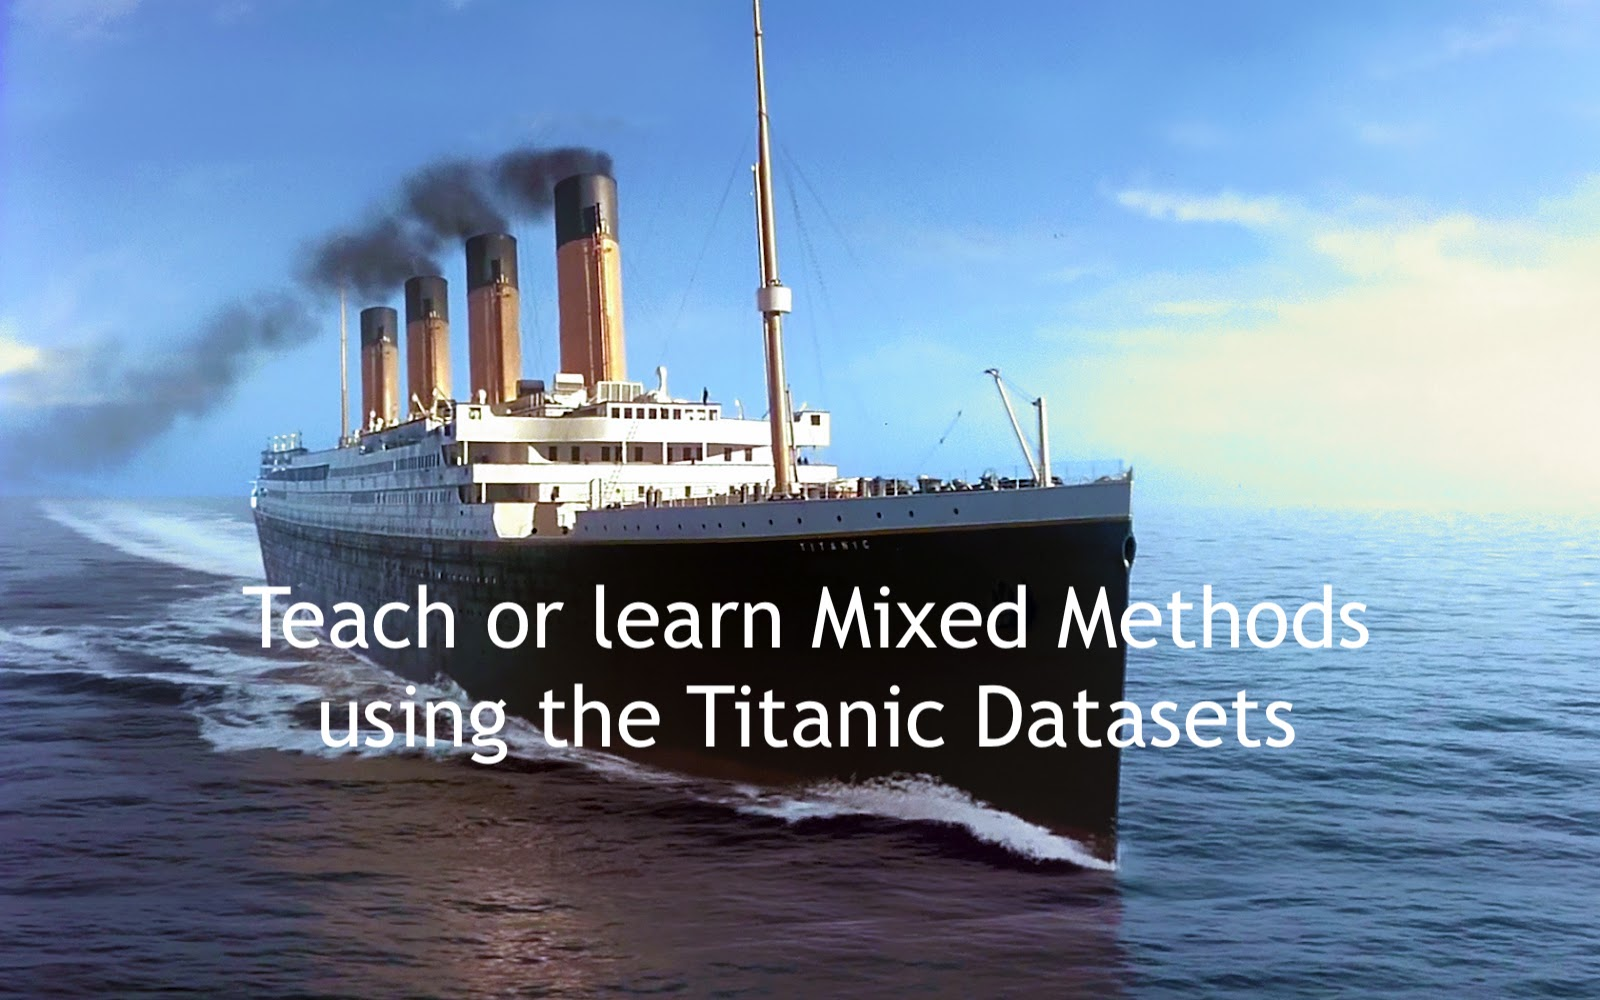 Titanic_1_Text.jpg